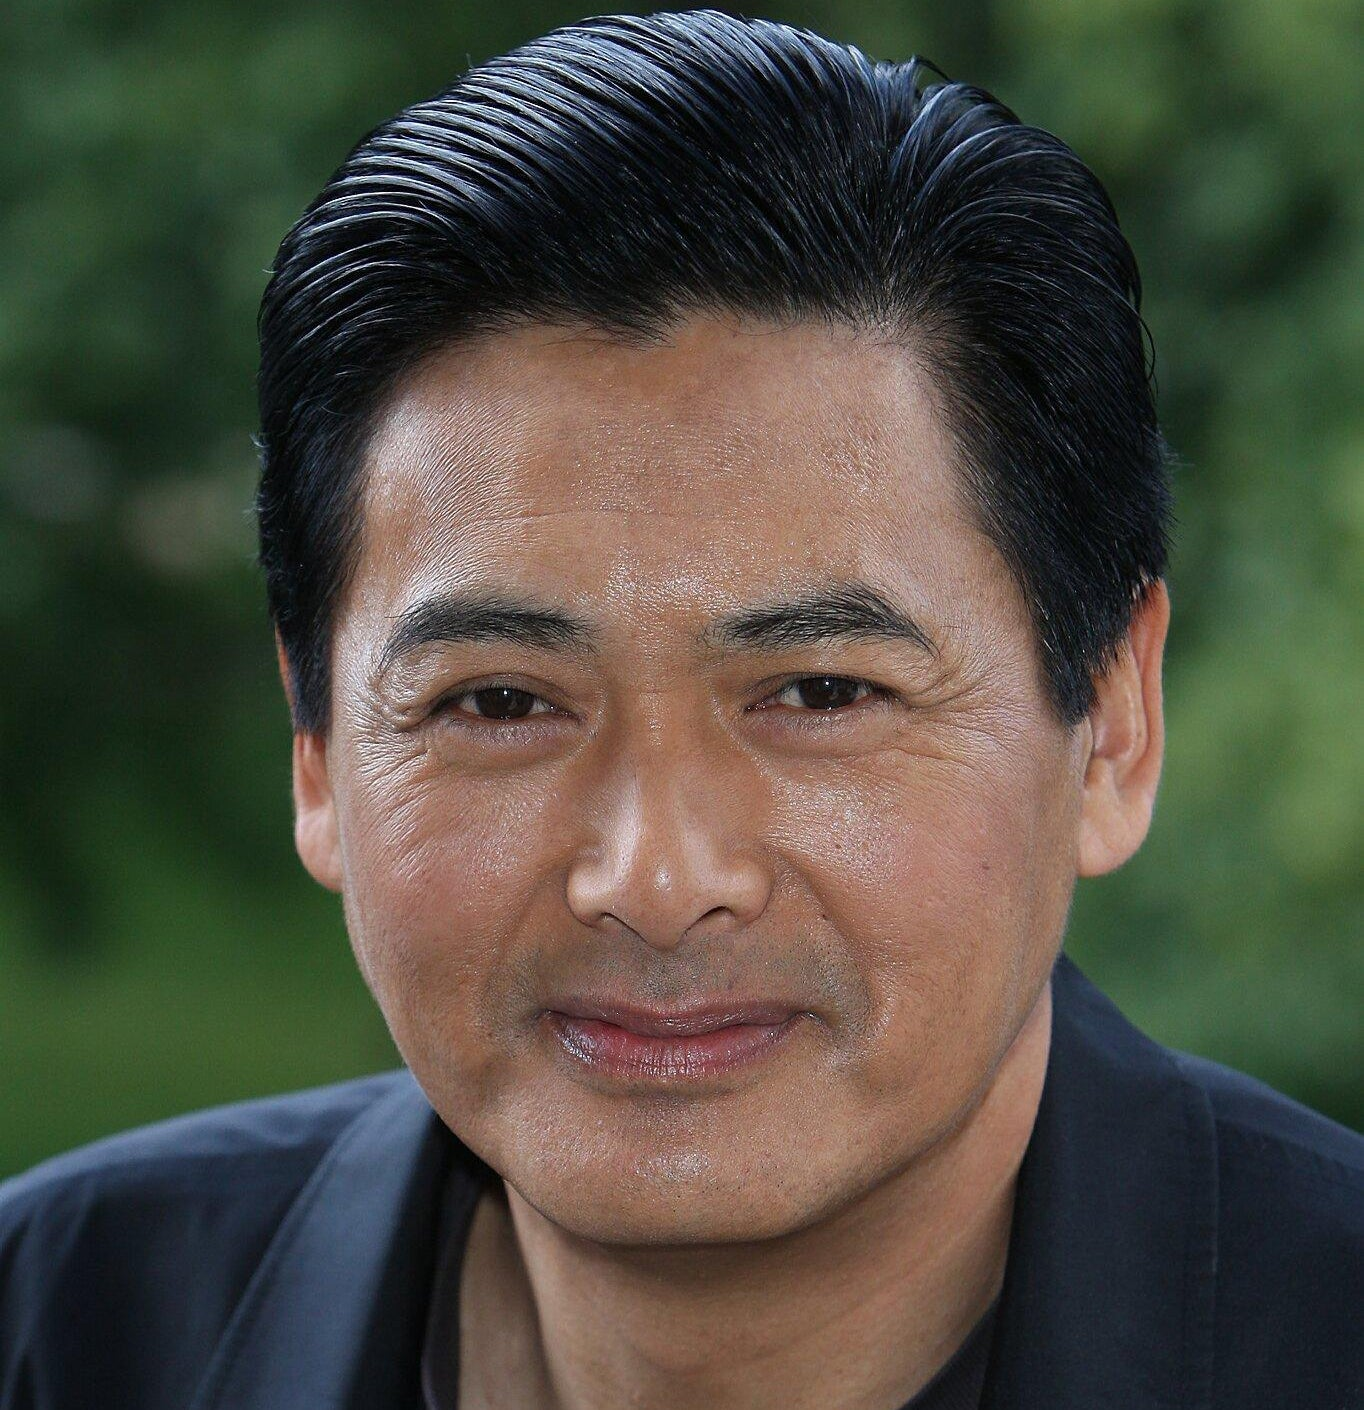 Chow Yun-Fat smiles for the camera